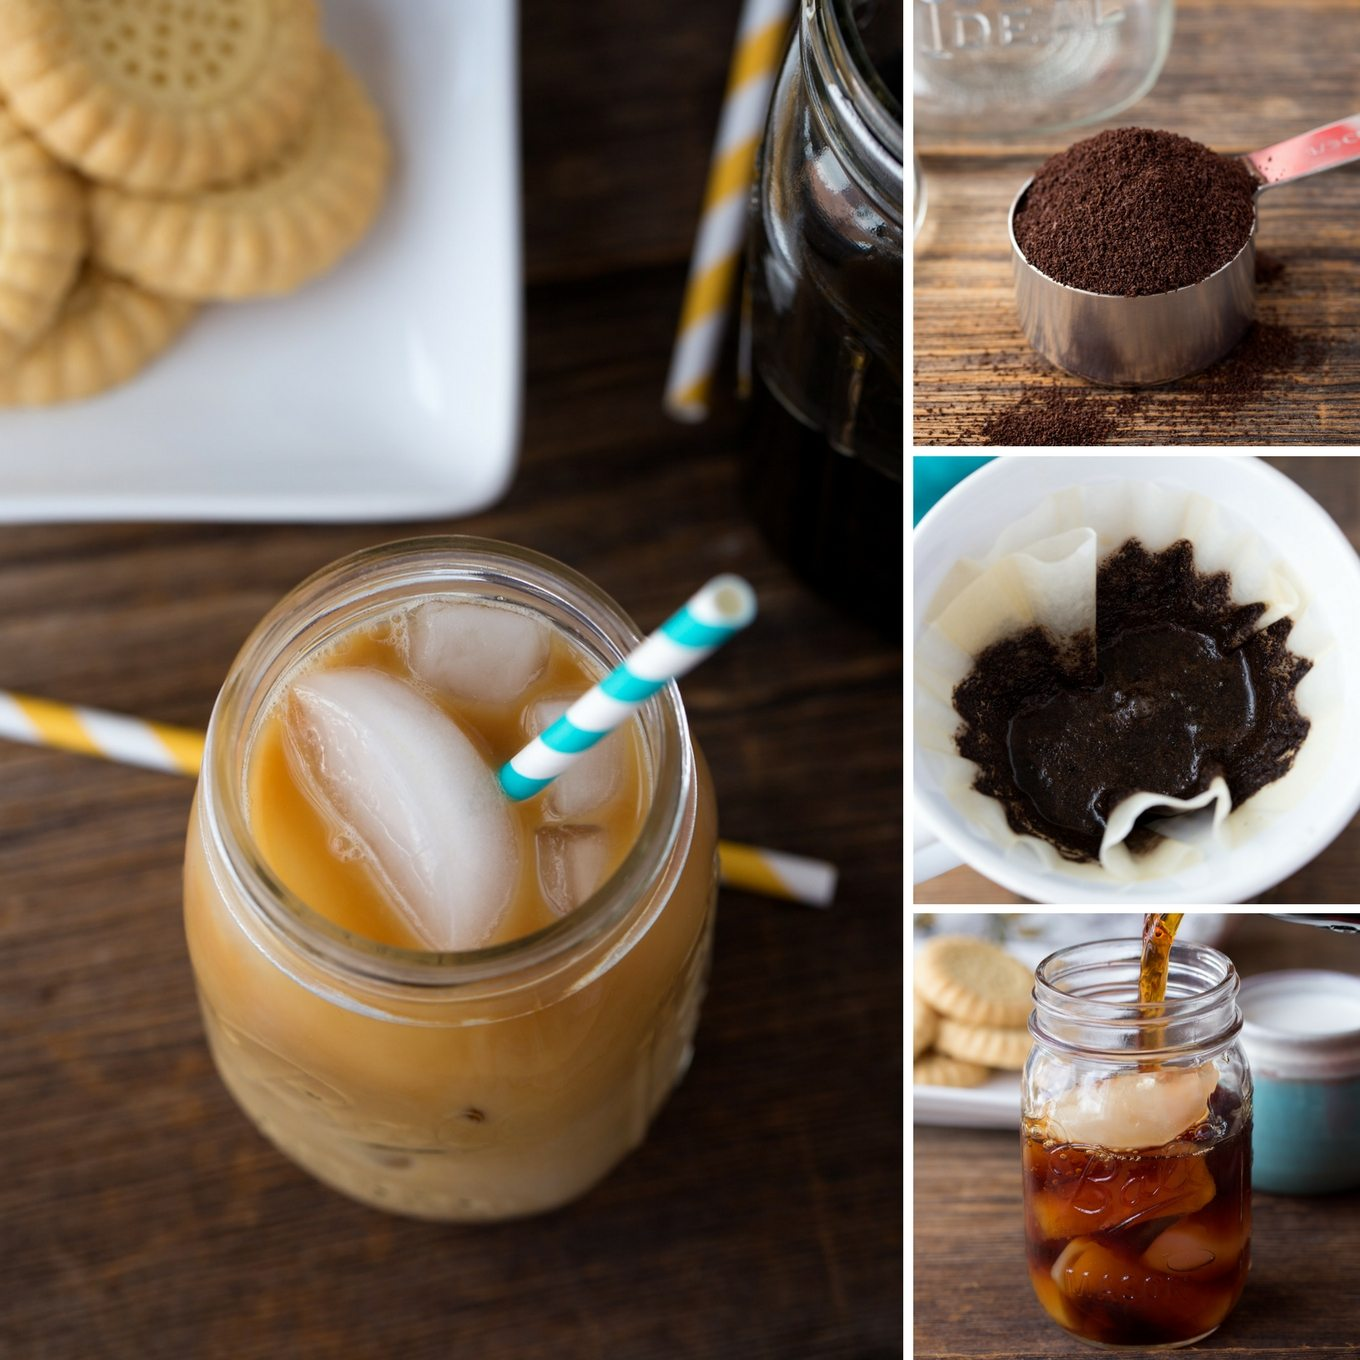 how to prepare cold coffee in home